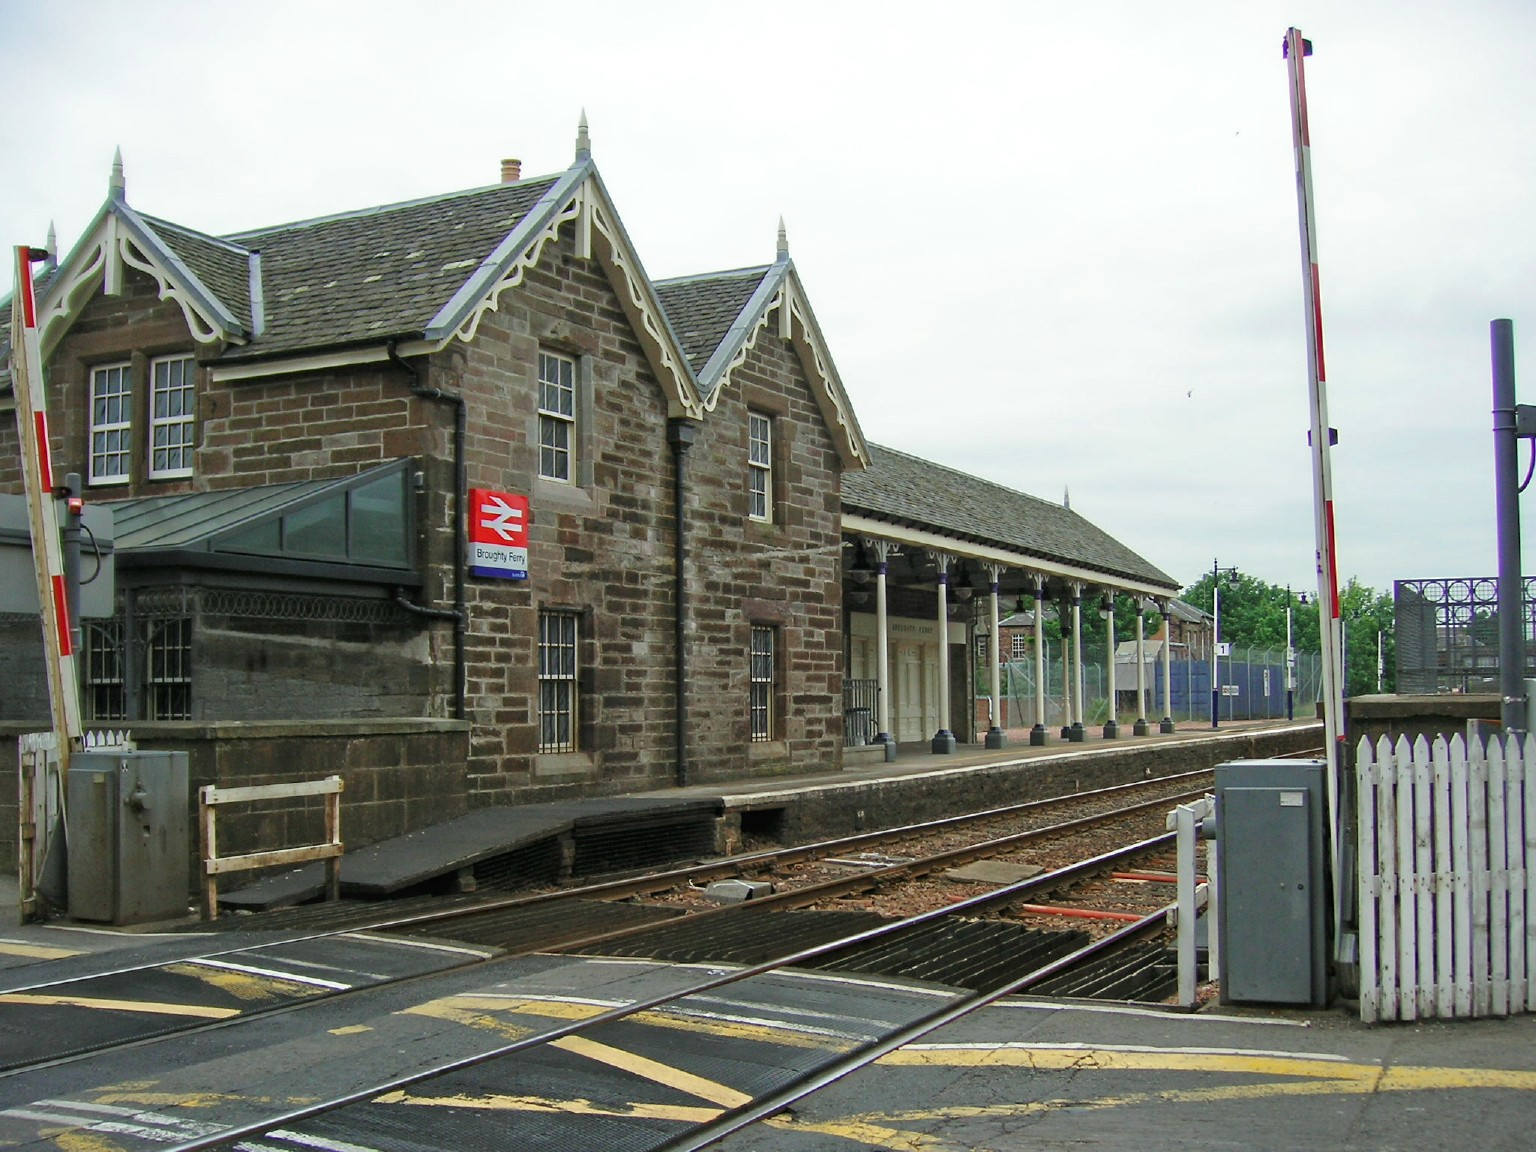 Station Broughty Ferry